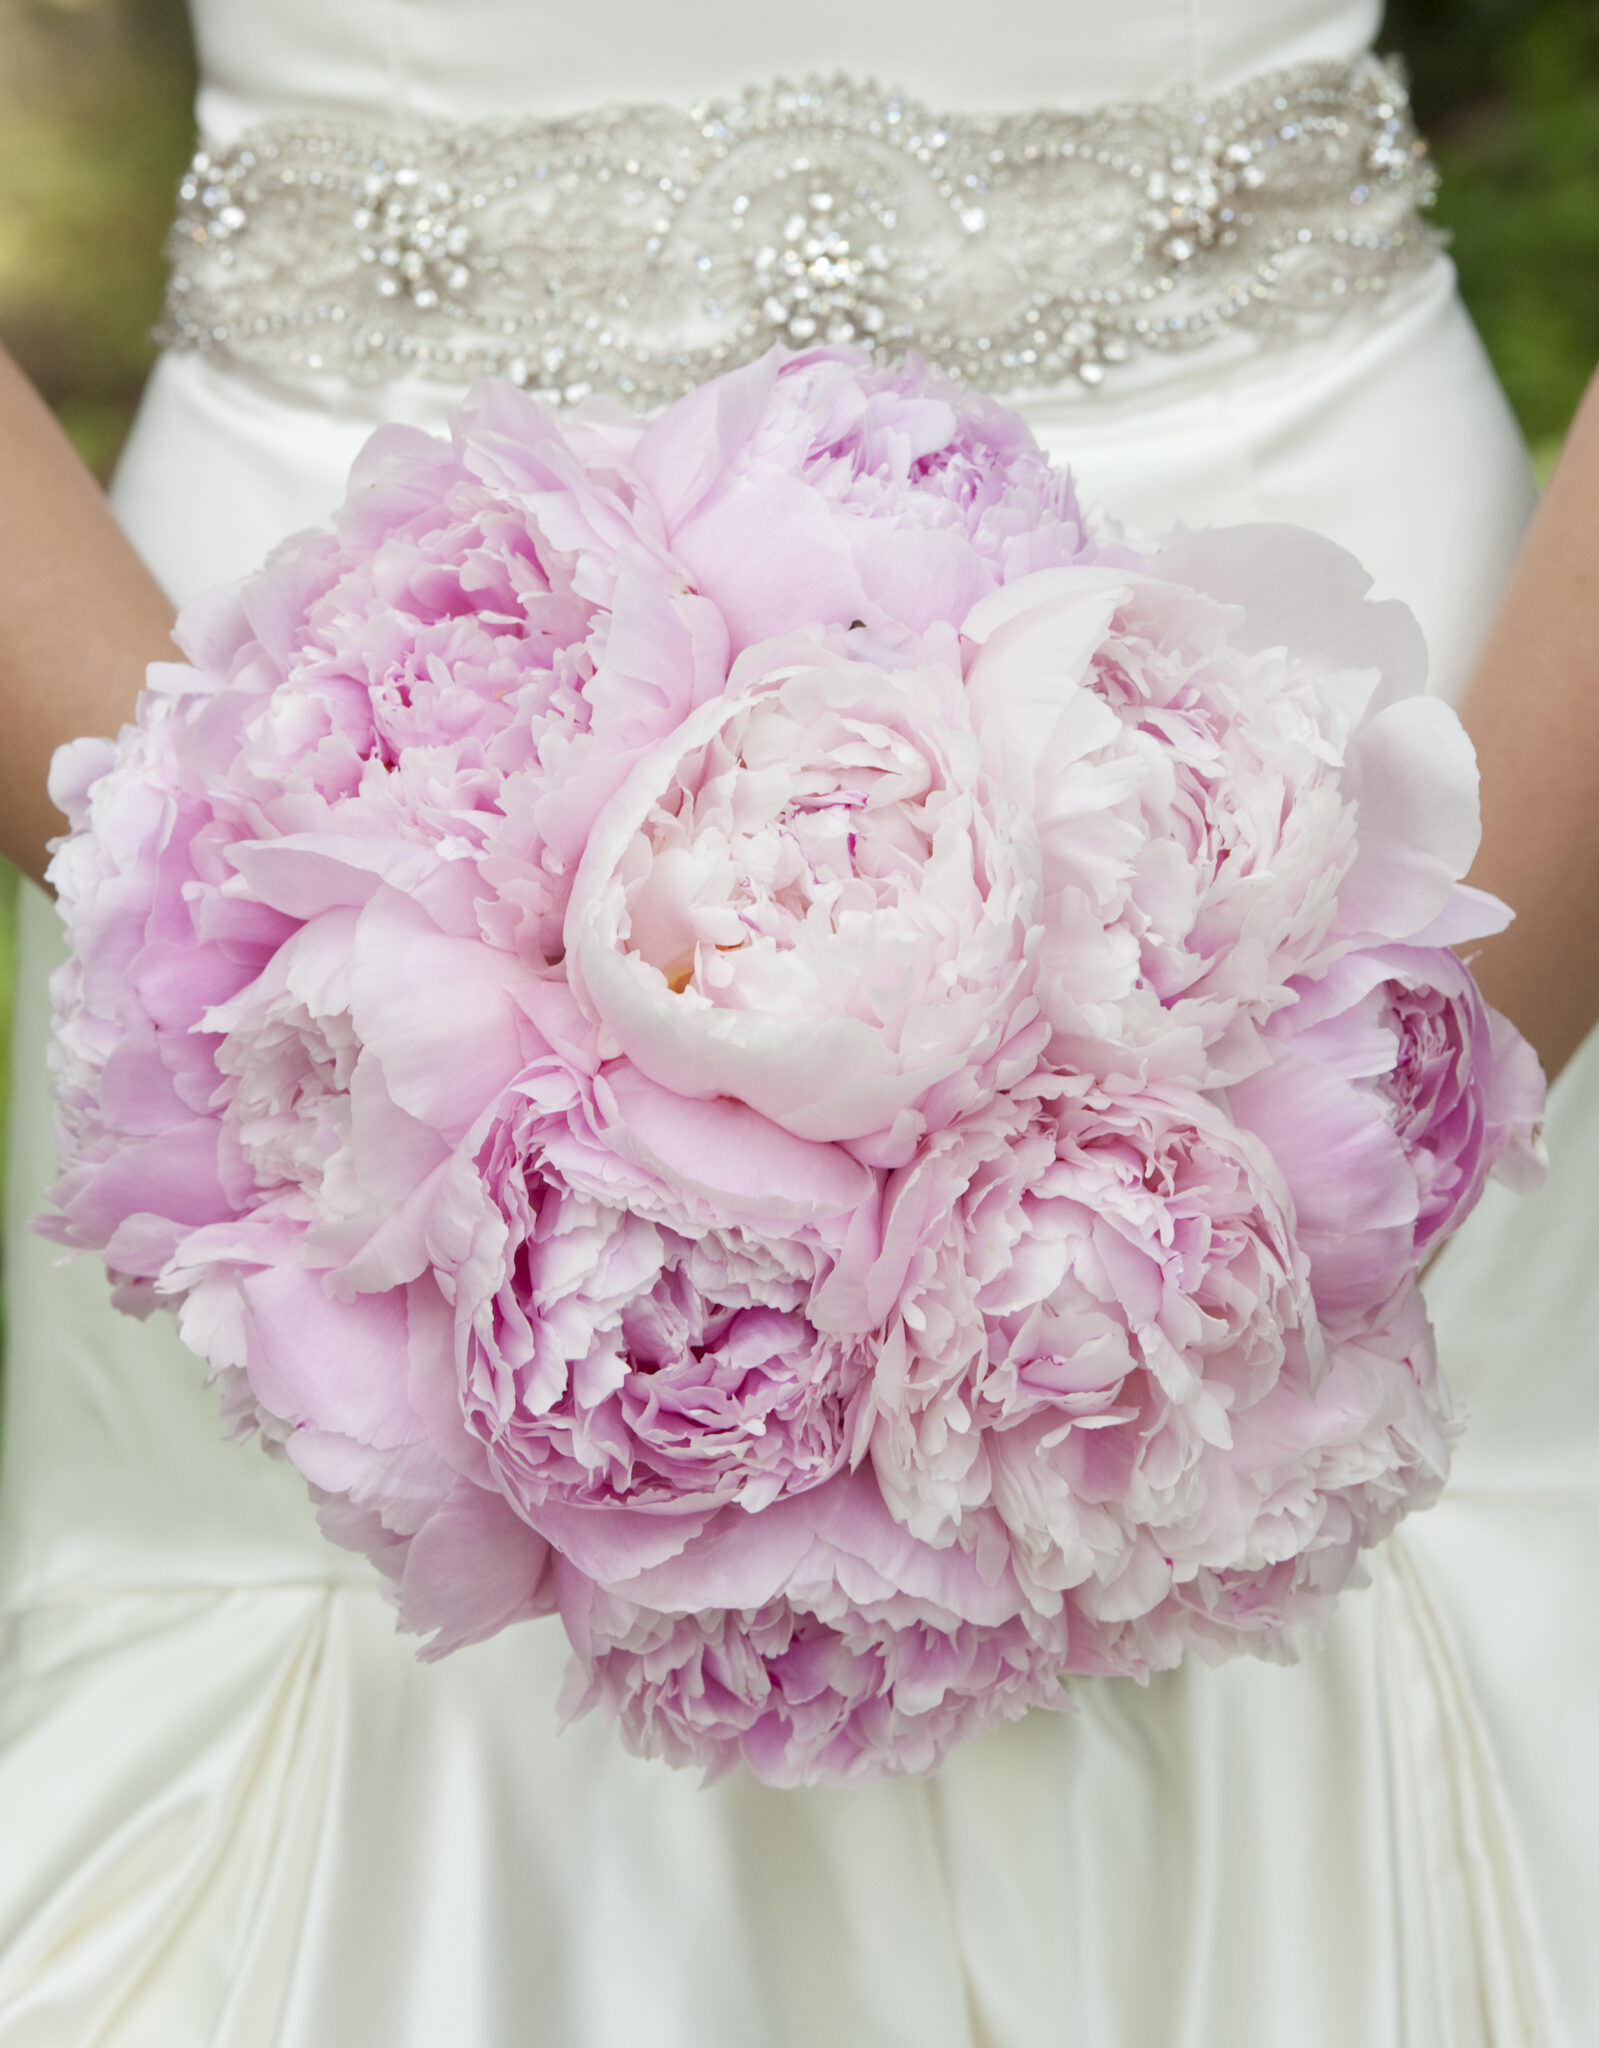 Wedding Wednesday: Peony Season | The Yes Girls